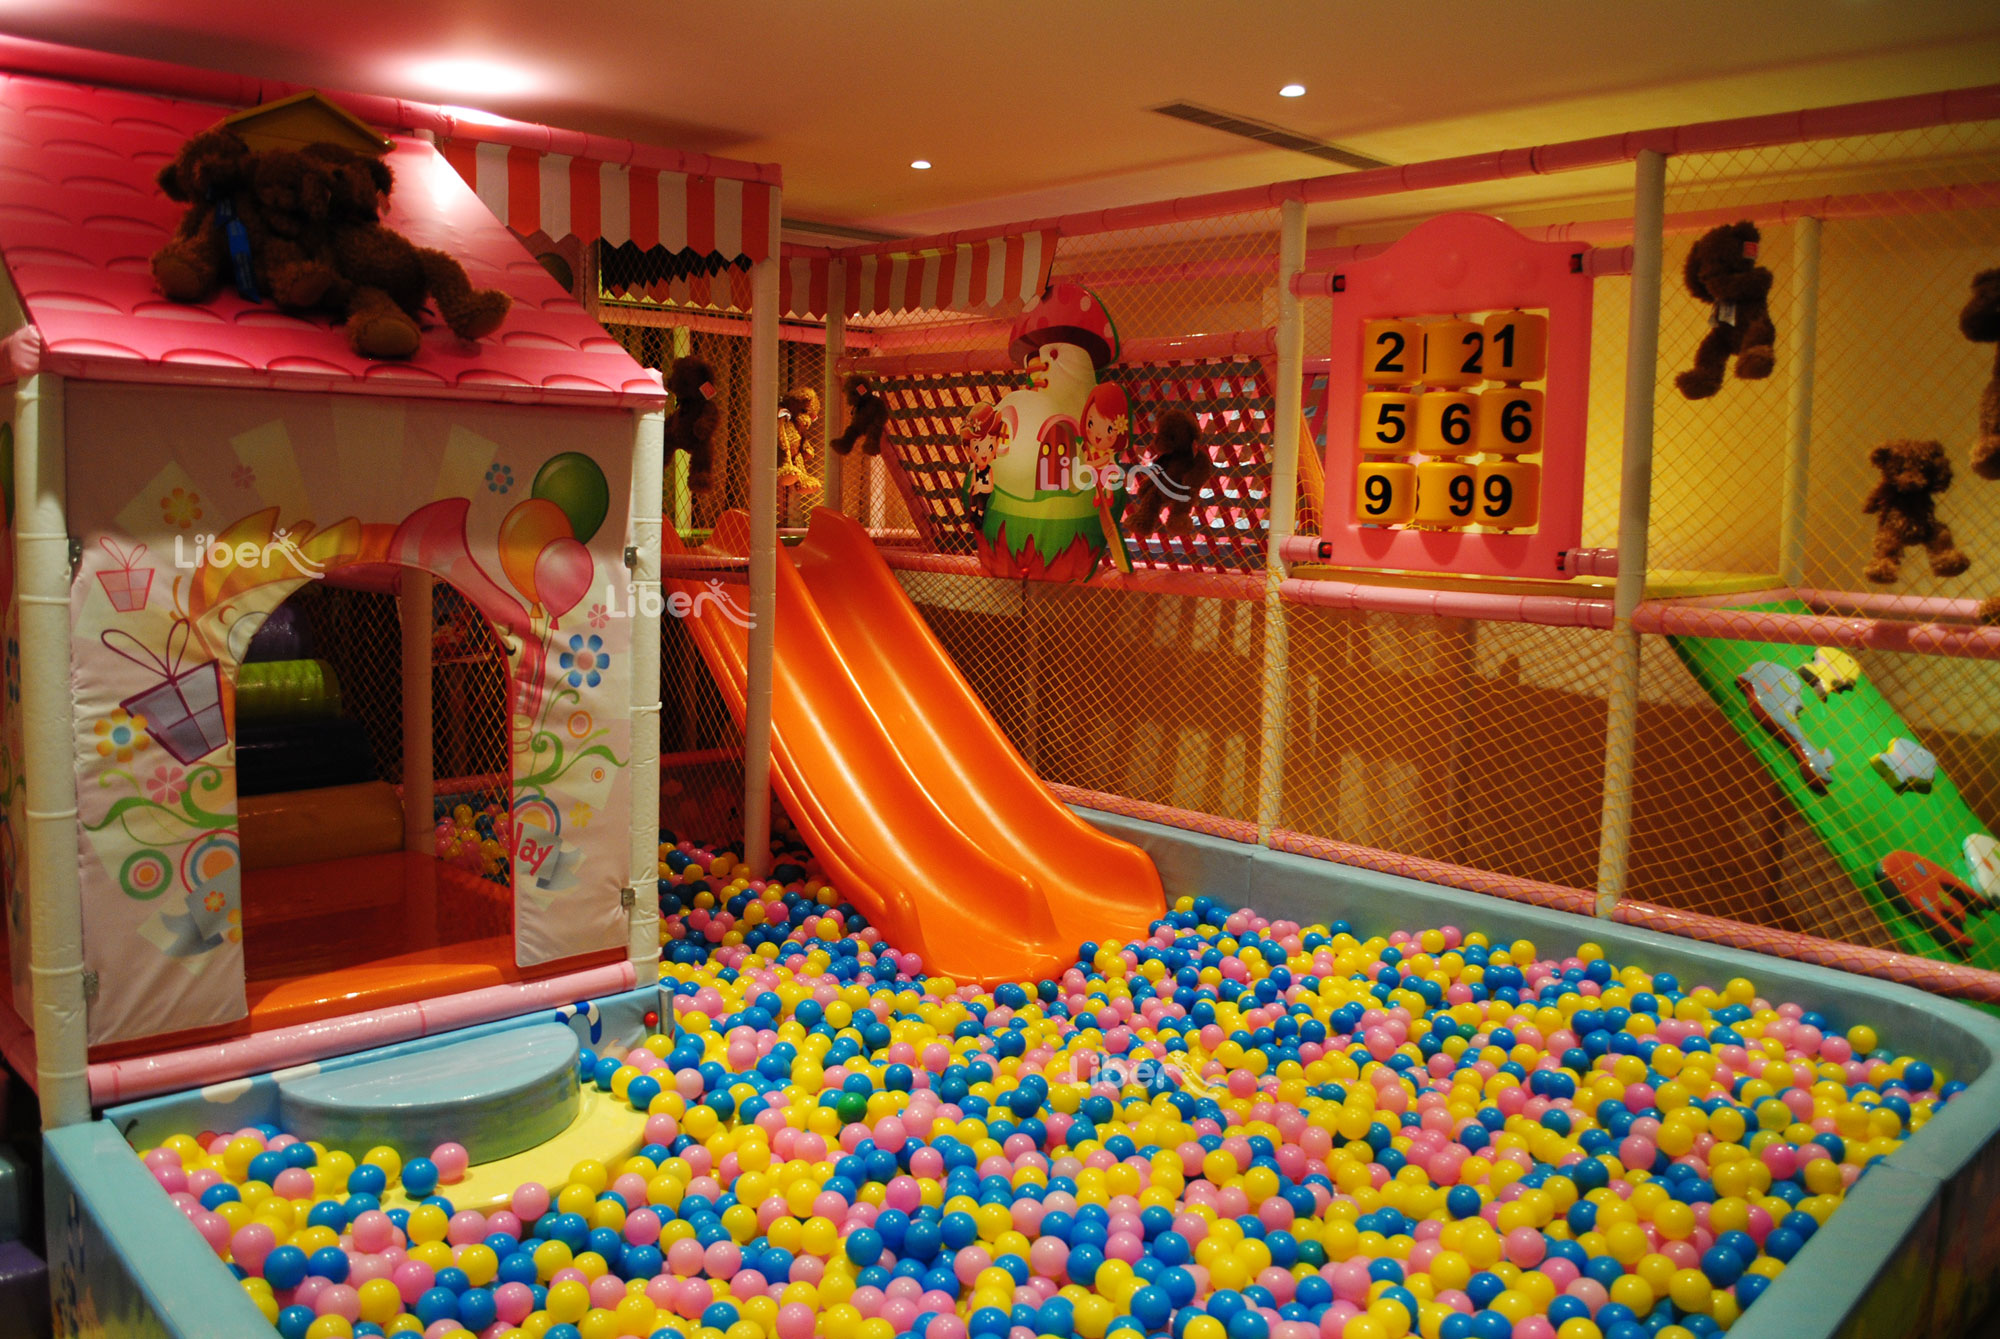 Liben Indoor Playground Project in Ningbo,China